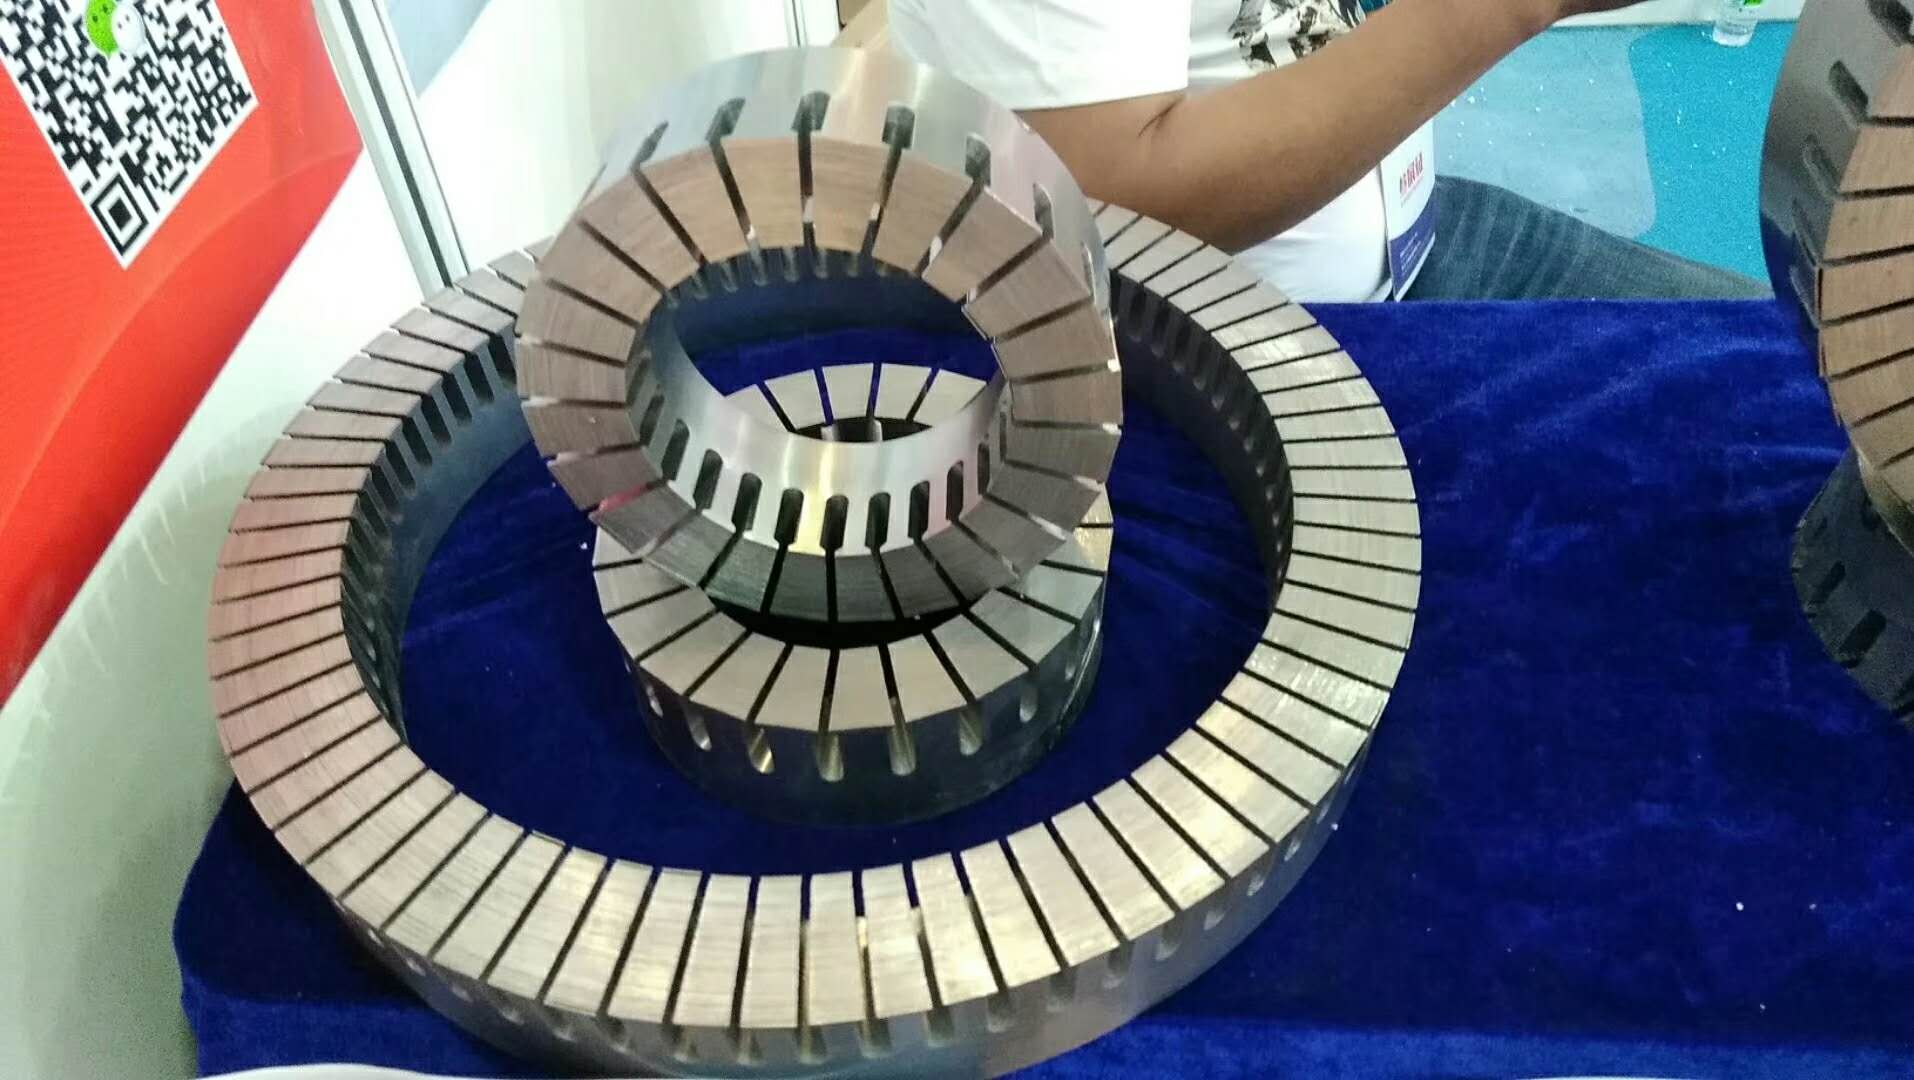 Axial Flux Stator Stack Lamination For Axial Flux Motor And Disk Motor -  Buy Axial Flux Stator,Disk Motor Stator,Axial Flux Motor Stator Product on